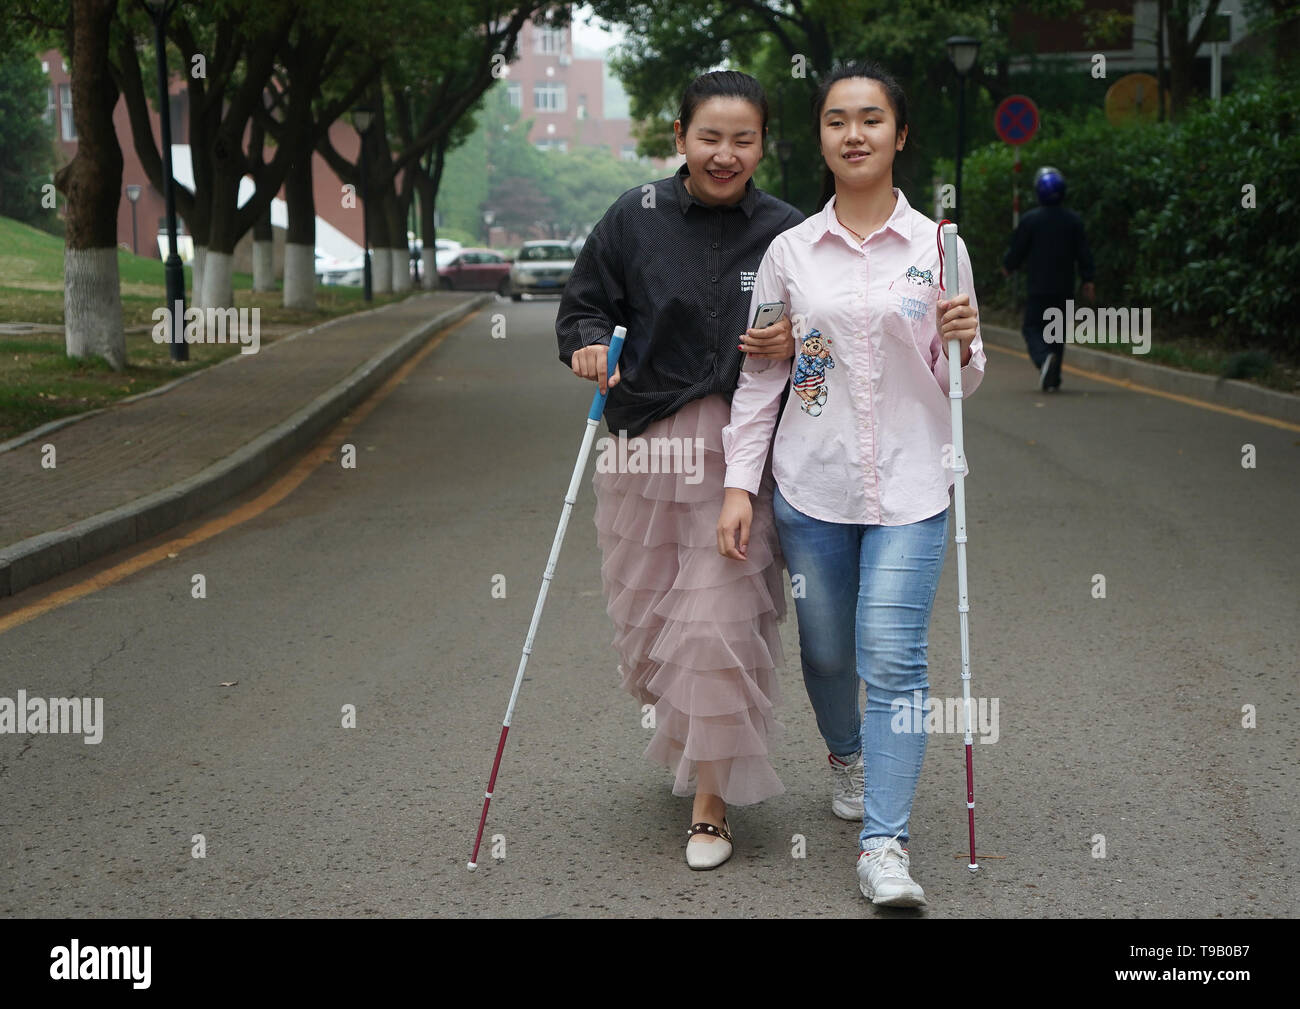 (190518) -- NANJING, May 18, 2019 (Xinhua) -- Wu Yifan(L) and Zhou Wenqing walk along the campus of Nanjing Normal University of Special Education in Nanjing, east China's Jiangsu Province, May 17, 2019. Wu Yifan, 22, and Zhou Wenqing, 21, are schoolmates in Nanjing Normal University of Special Education. Both of them lost eyesight in their childhood.   In their spare time, Wu likes doing makeup, paper-cutting as well as playing the Guzheng, Chinese Zither. While Zhou enjoys playing the piano. Zhou once developed a computer game for visually impaired people.   The two girls have passed the Col - Stock Image